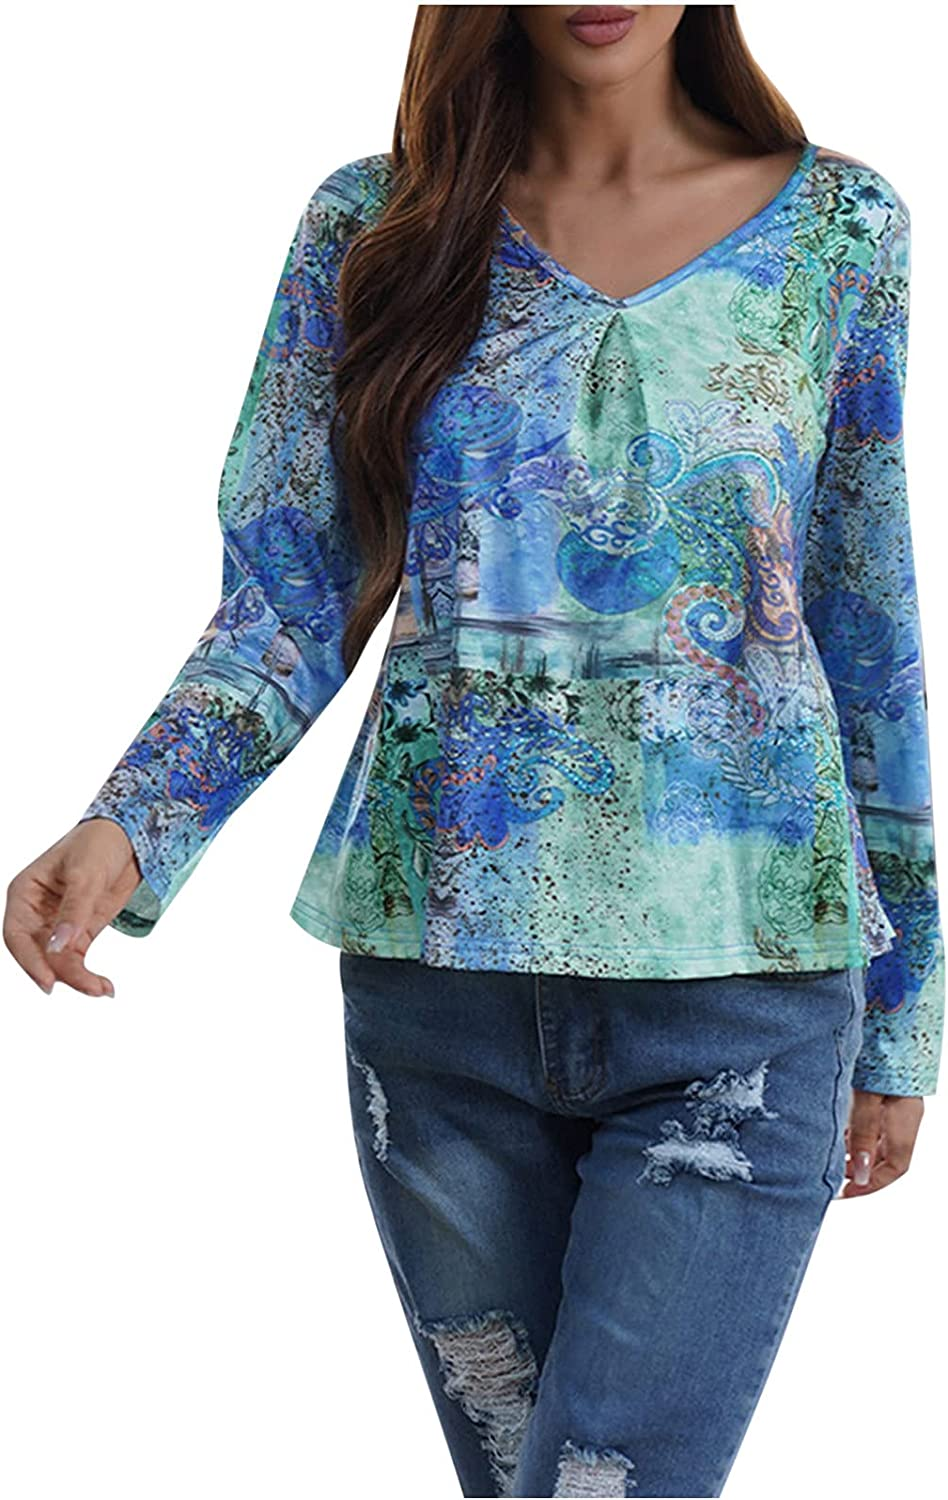 TIMIFIS Womens Shirts for Fall Casual Long Sleeve Blouse Fashion V Neck Pullover Printed Tunic Tops Loose Sweatshirt